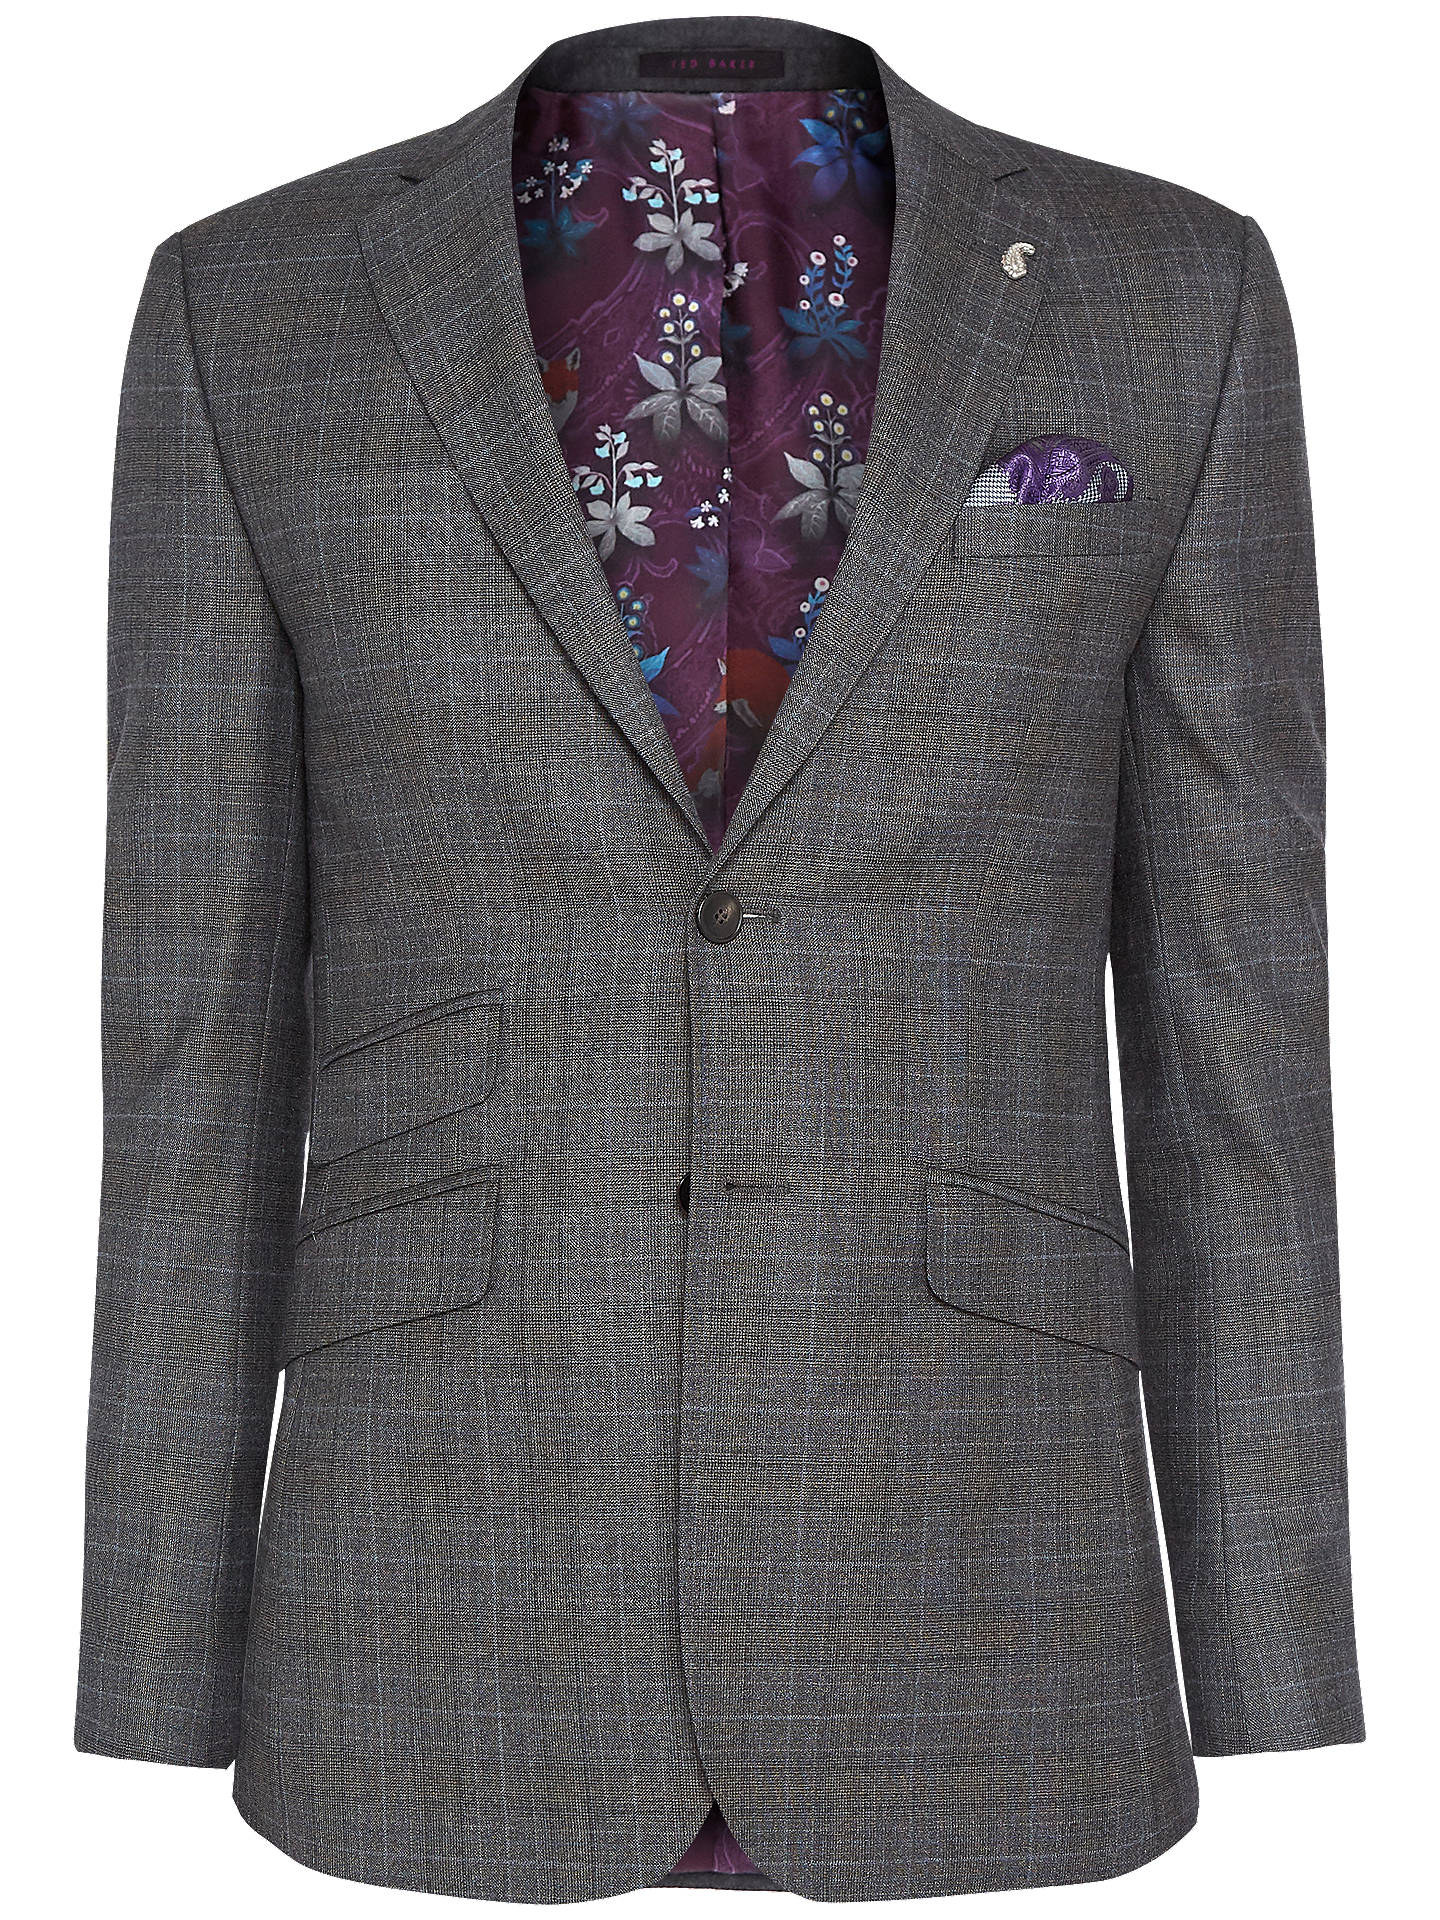 Buy Ted Baker Doverrj Sterling Check Tailored Suit Jacket, Charcoal, 38S Online at johnlewis.com